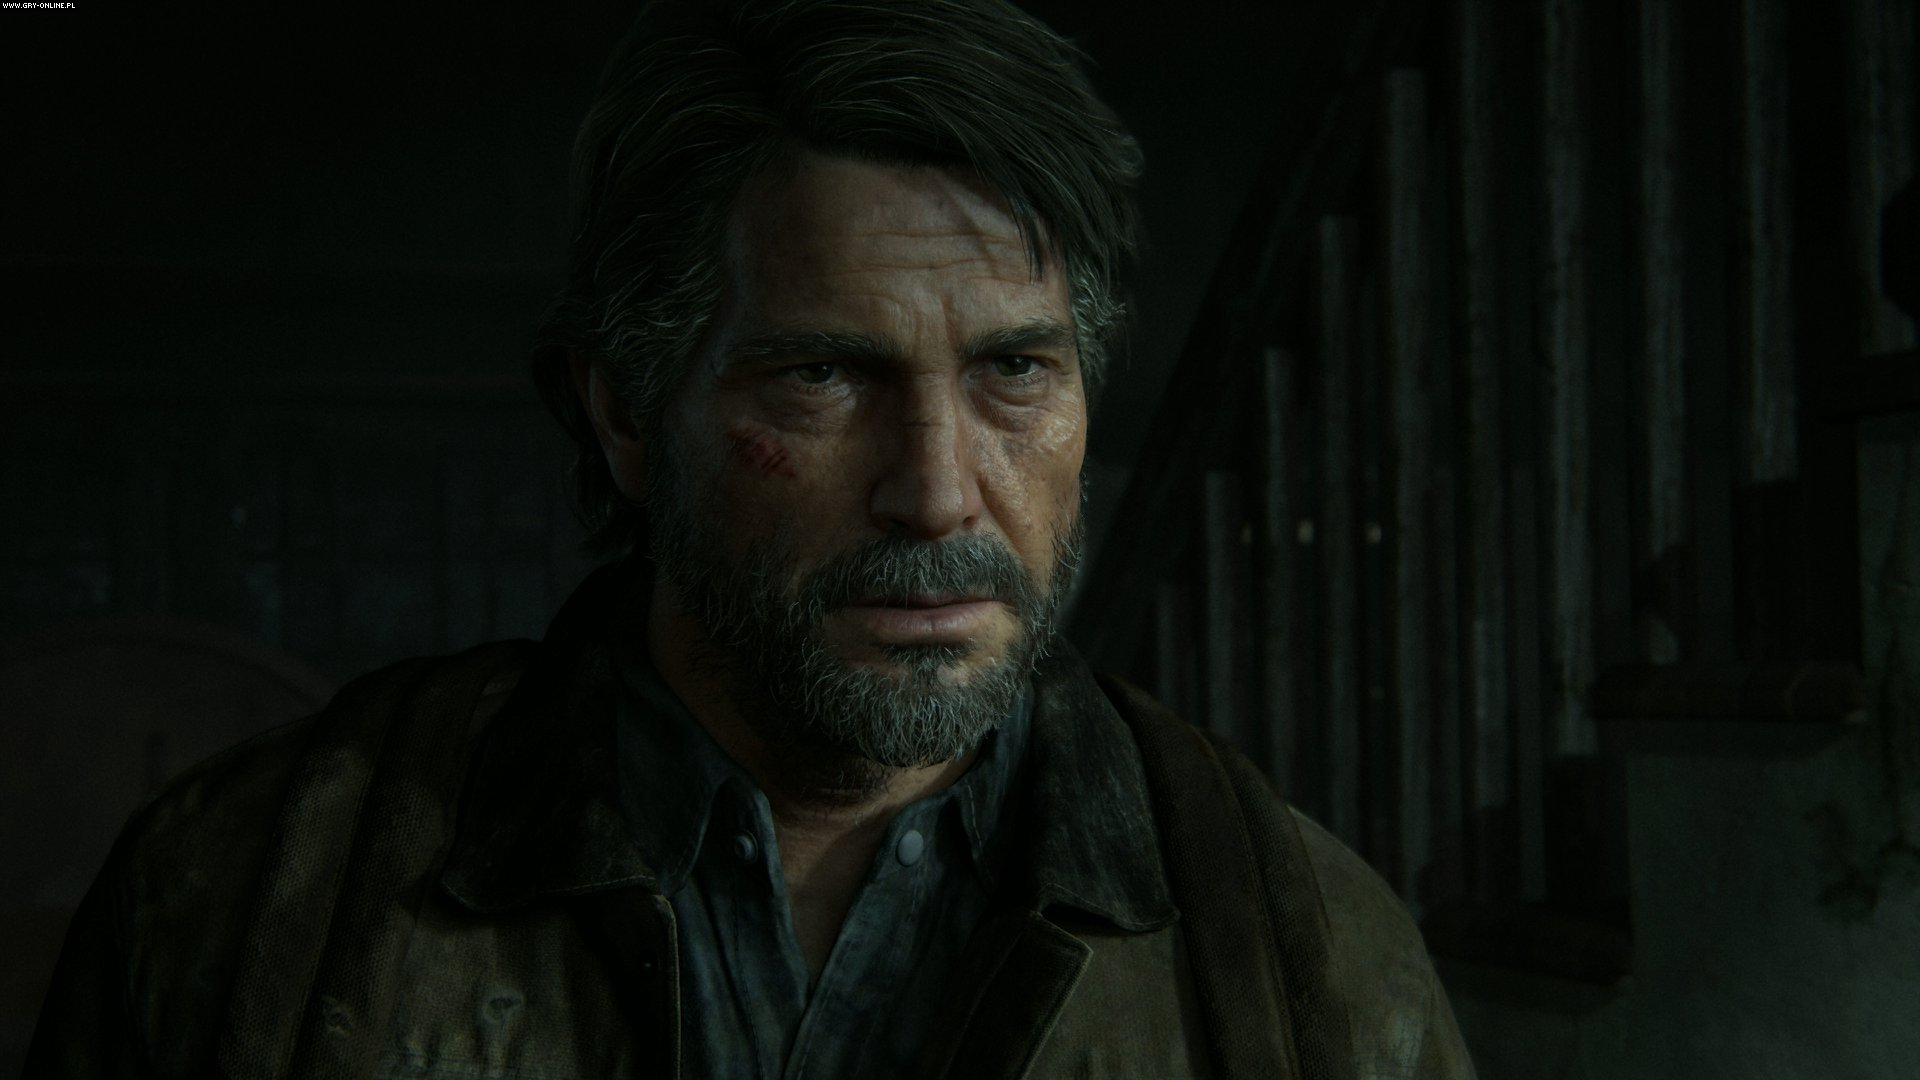 The Last of Us: Part II PS4 Games Image 2/38, Naughty Dog, Sony Interactive Entertainment